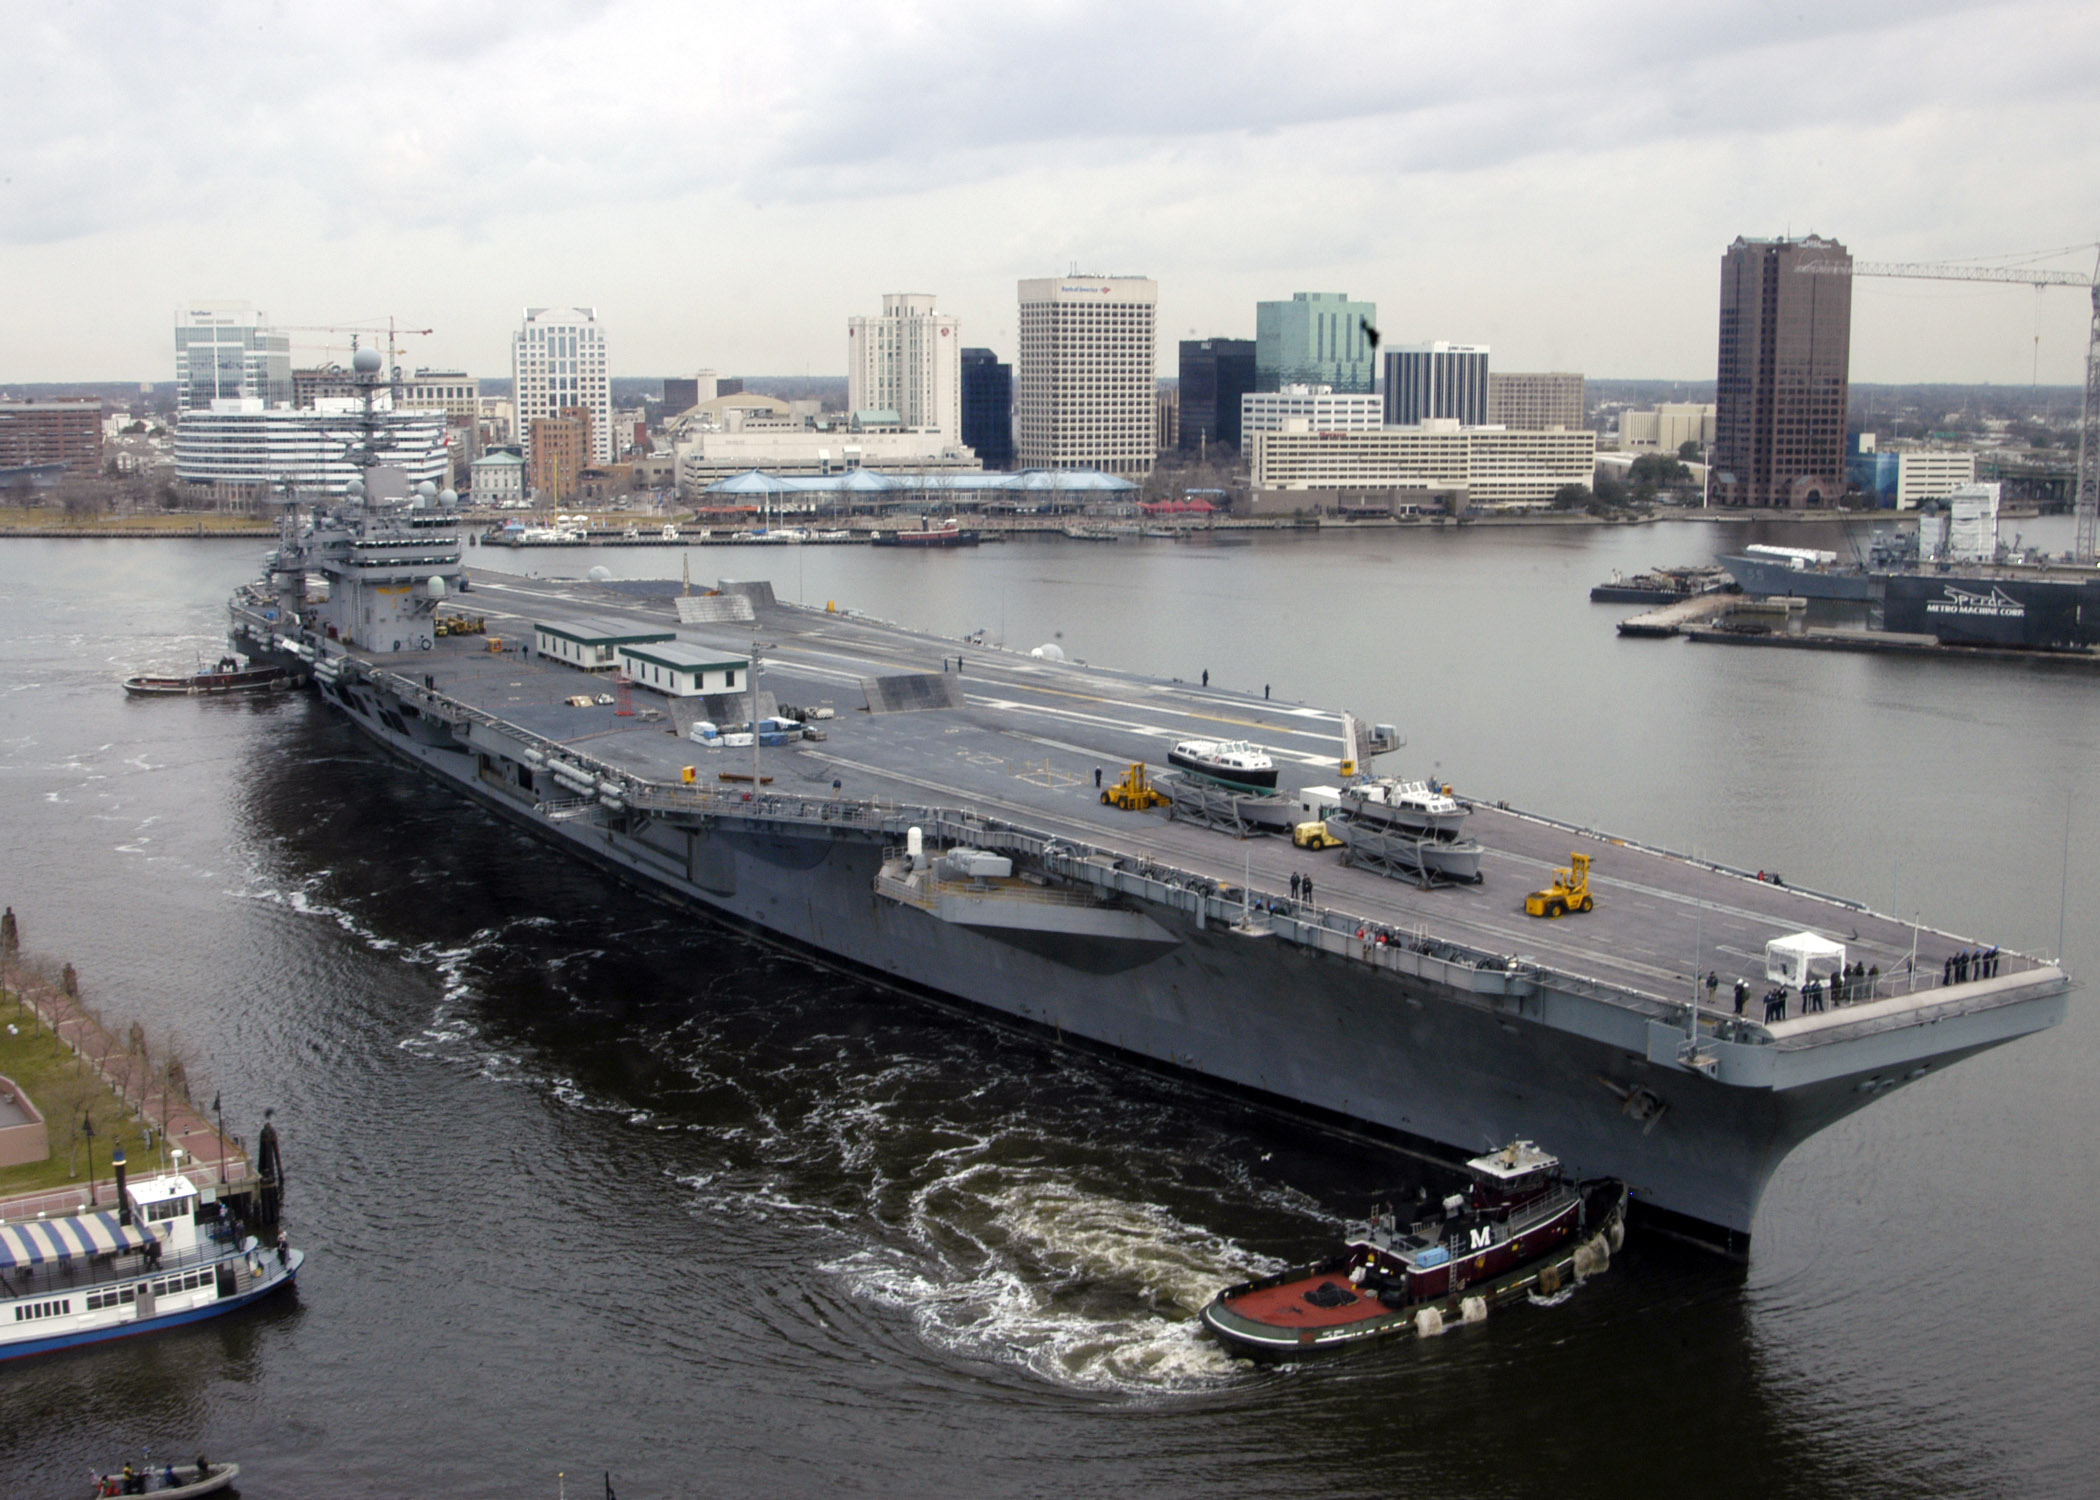 US_Navy_070307-N-8138B-001_Nimitz-class_aircraft_carrier_USS_Theodore_Roosevelt_(CVN_71)_makes_her_transit_down_the_Elizabeth_River_from_Naval_Station_Norfolk_to_Norfolk_Naval_Shipyard